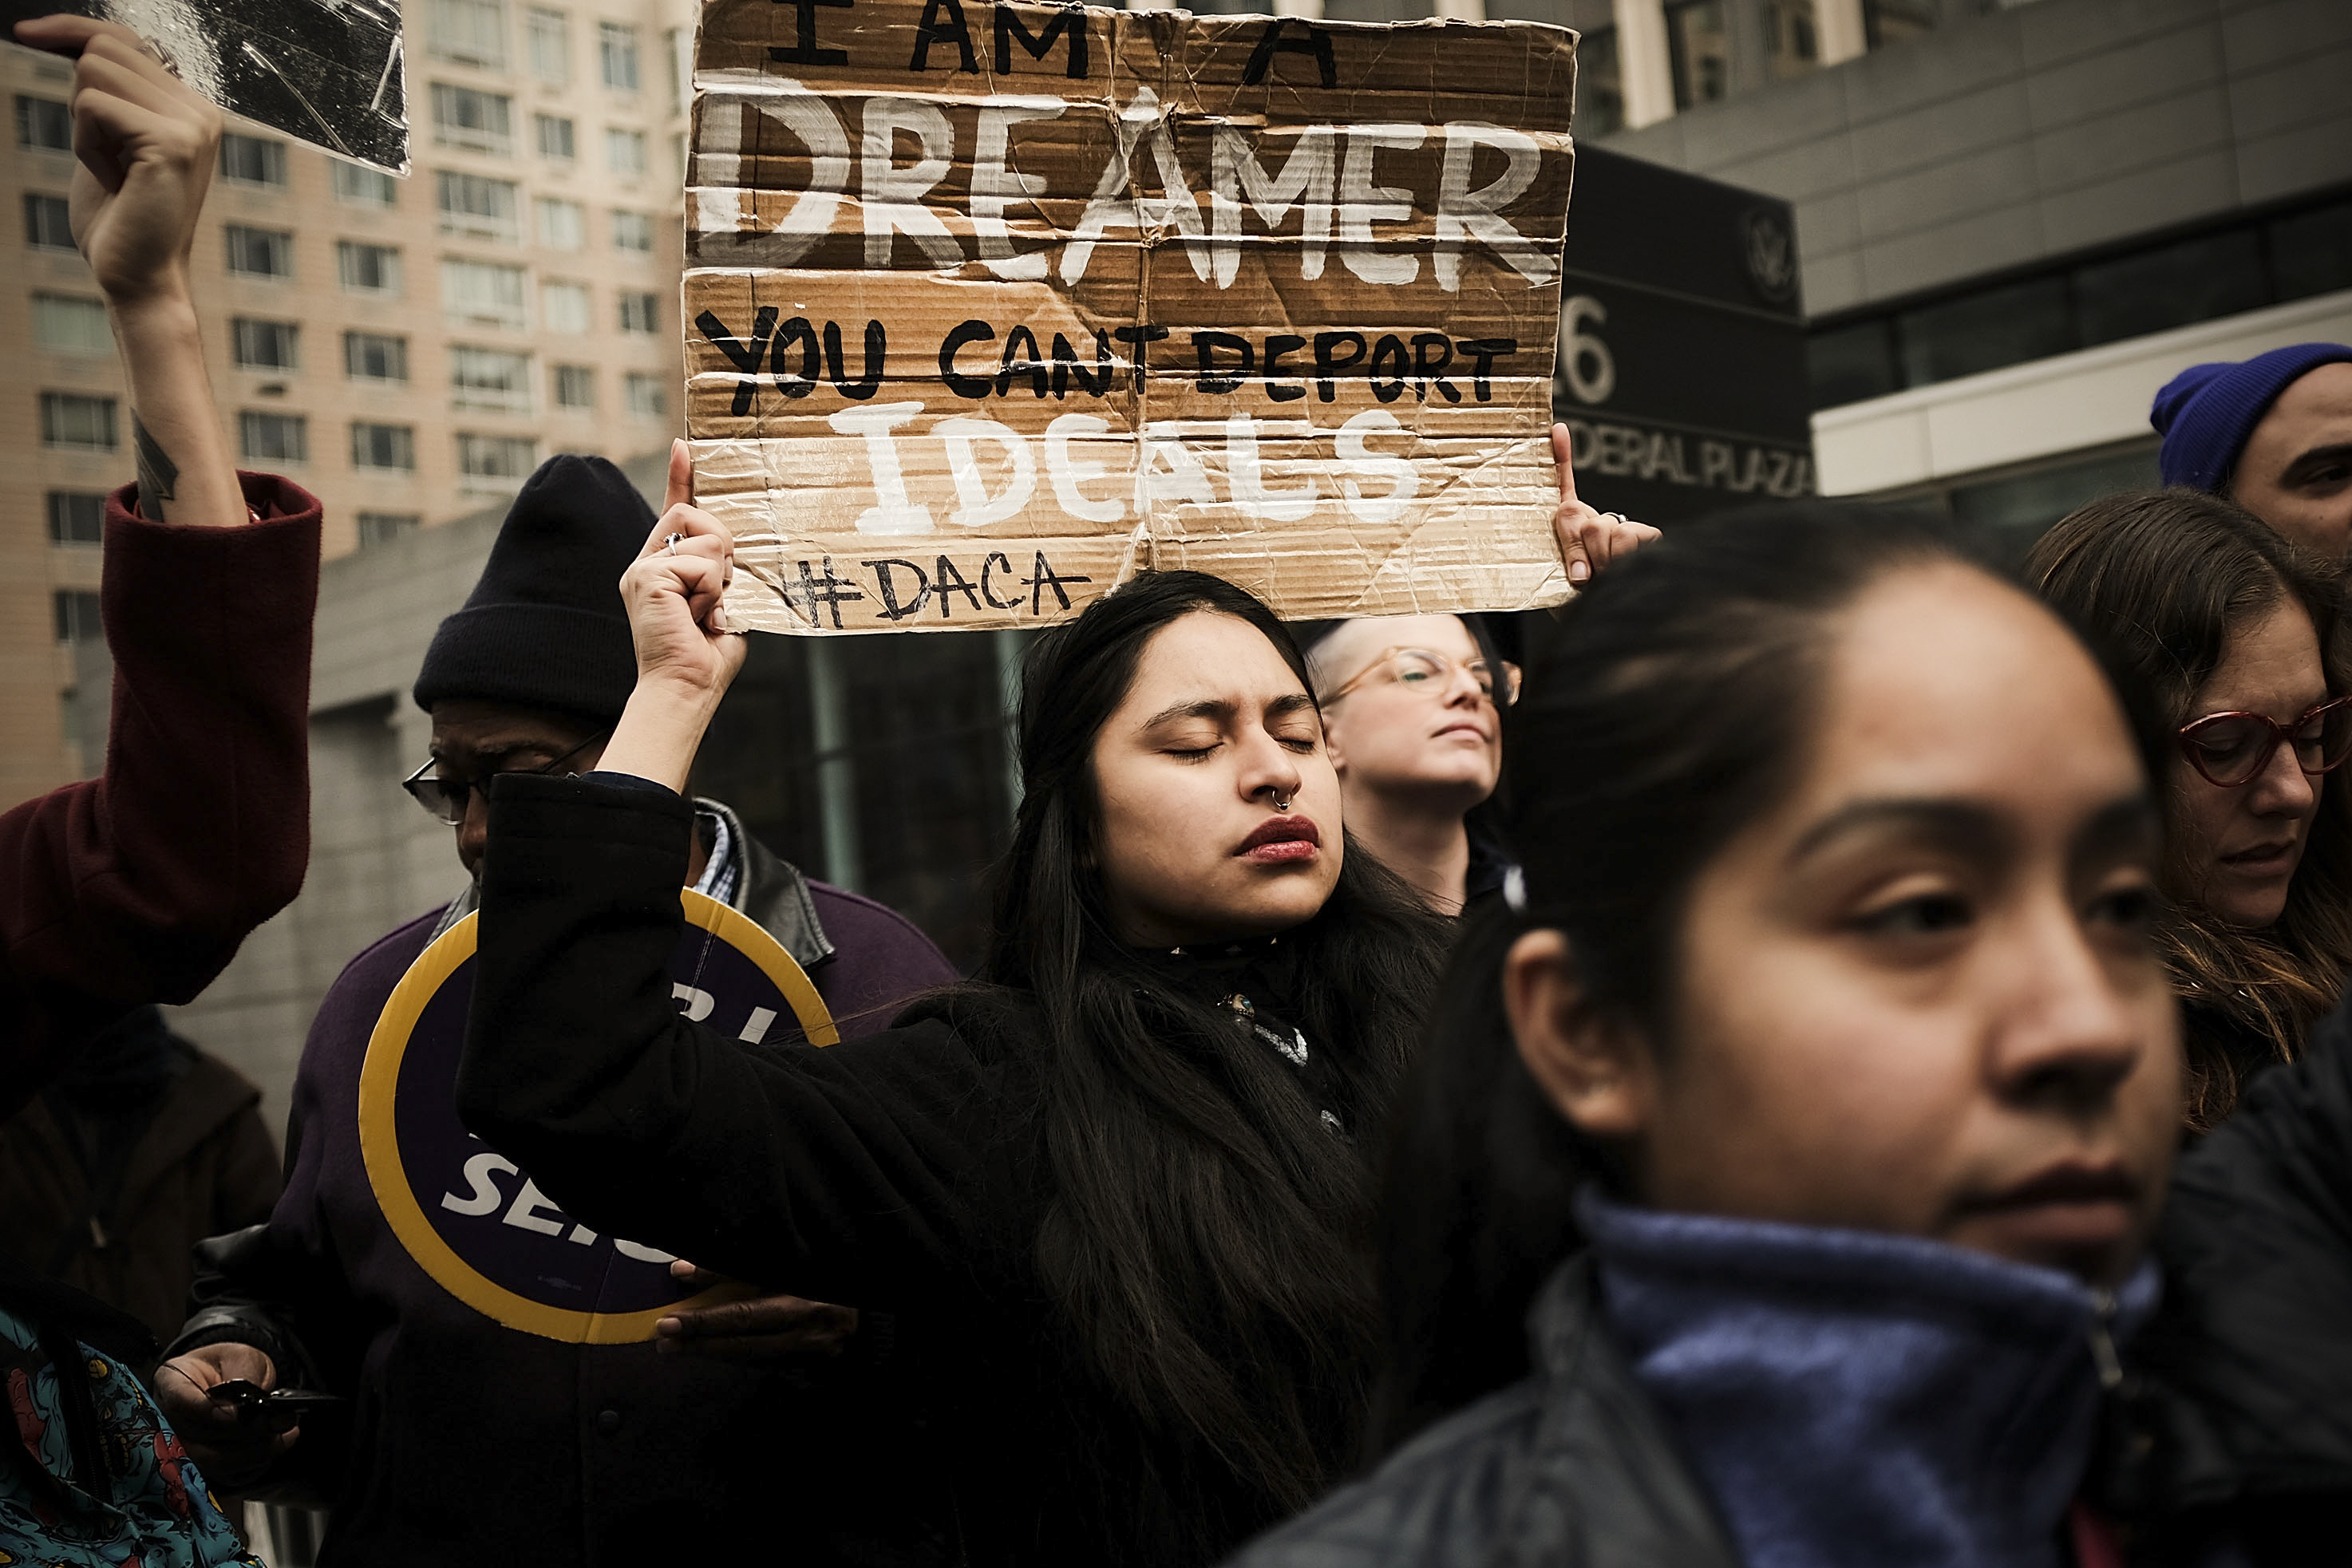 Trump improbably promises Congress will fix DACA if the Supreme Court strikes it down